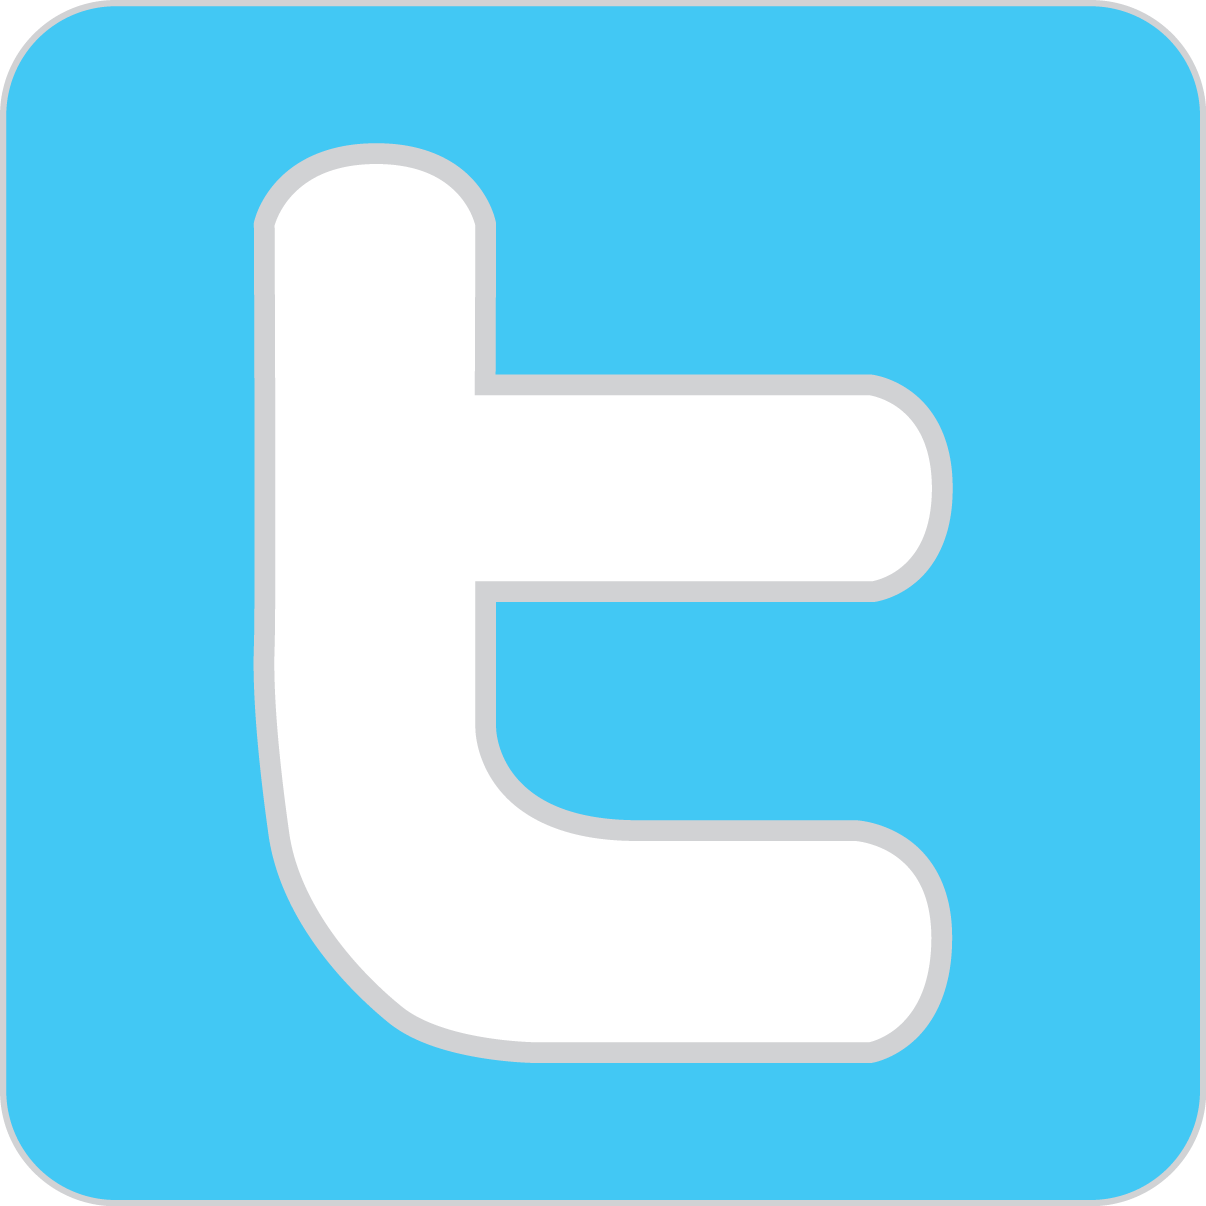 twitter high quality png web icons png rh webiconspng com twitter logo png hd twitter logo png file